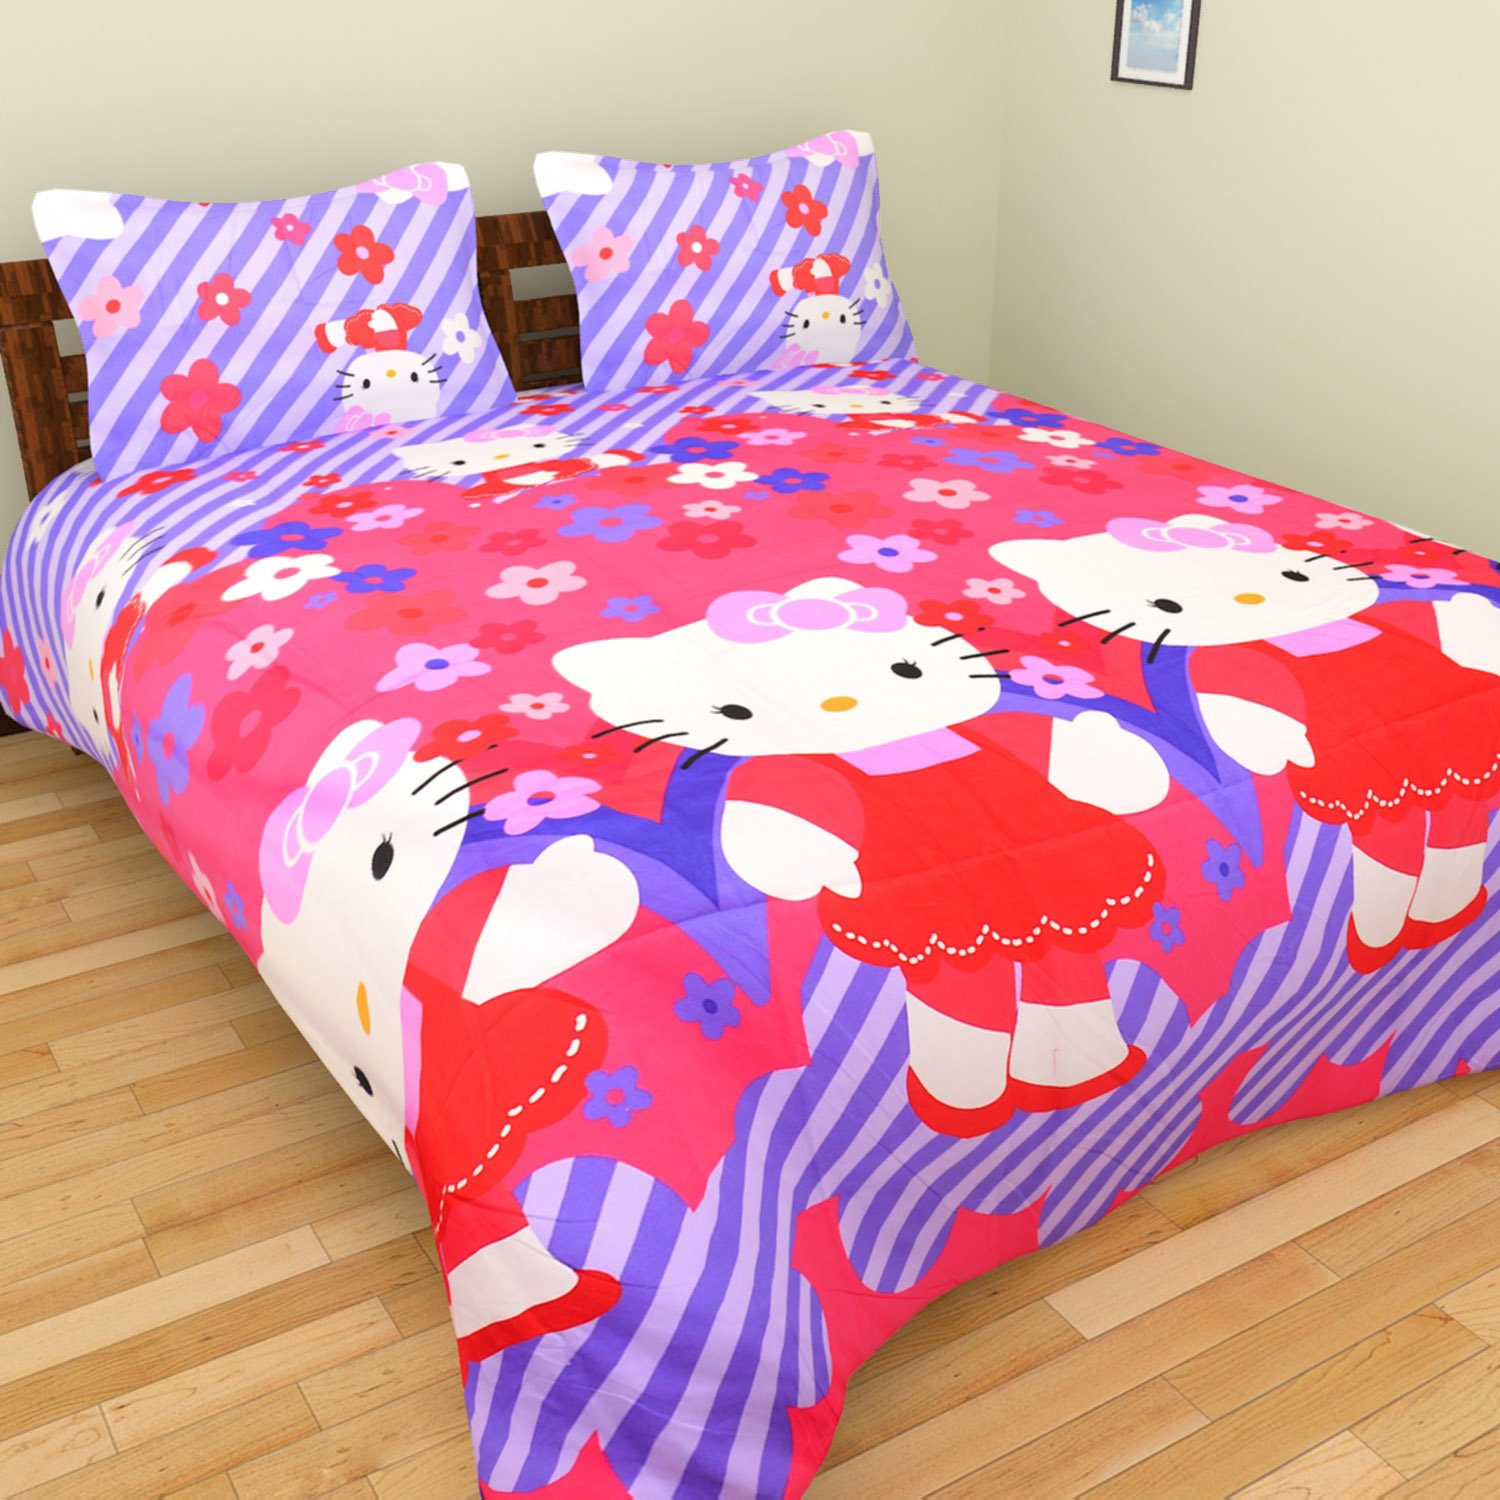 Pink hello kitty bedsheet - Tanvi S 3d Hello Kitty Cartoon Printed Double Bedsheet With 2 Pillow Covers Pink Amazon In Home Kitchen